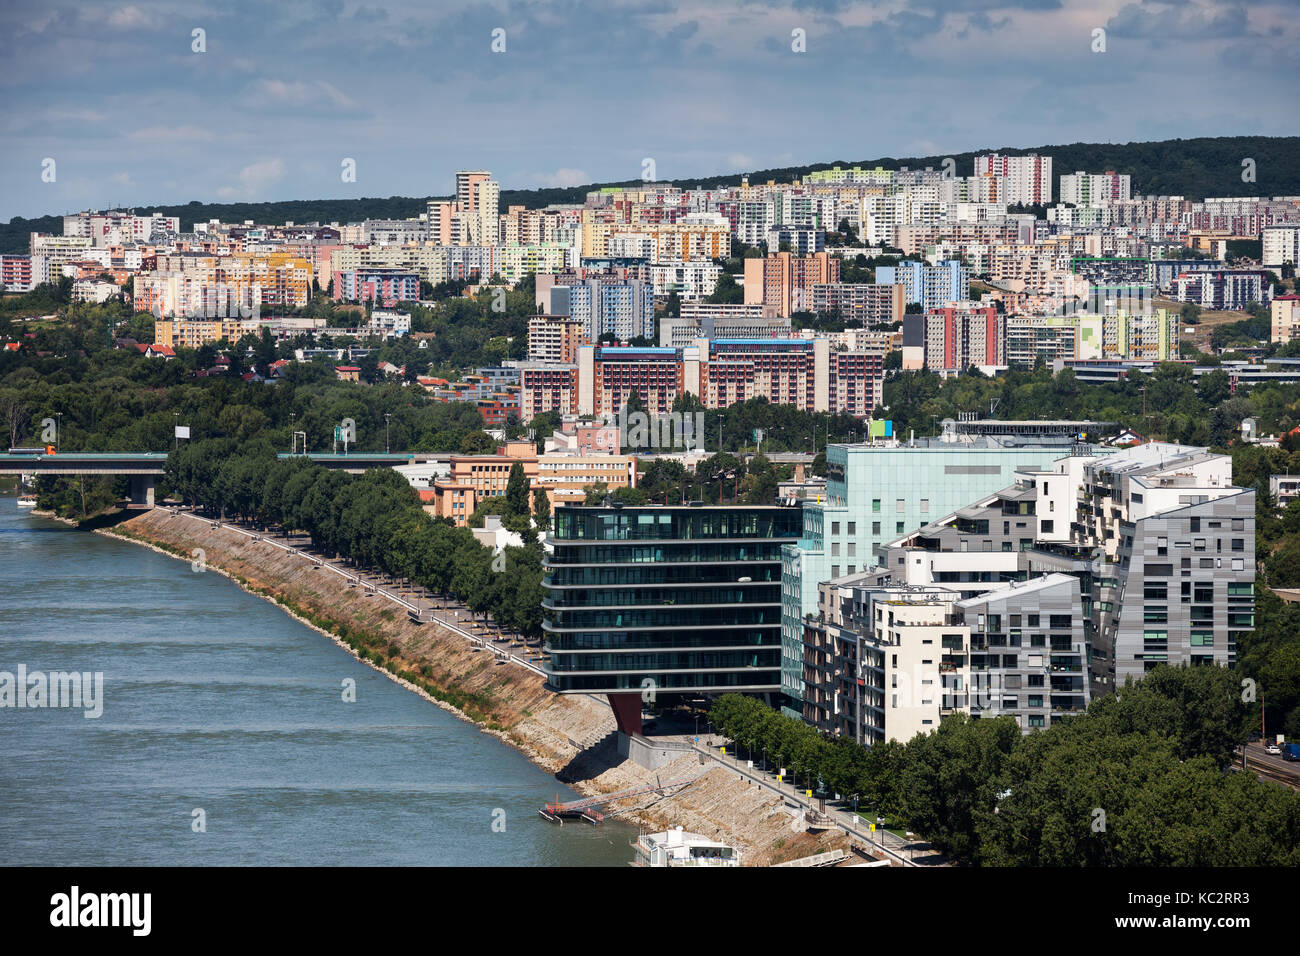 apartment houses block bratislava stockfotos apartment houses block bratislava bilder alamy. Black Bedroom Furniture Sets. Home Design Ideas